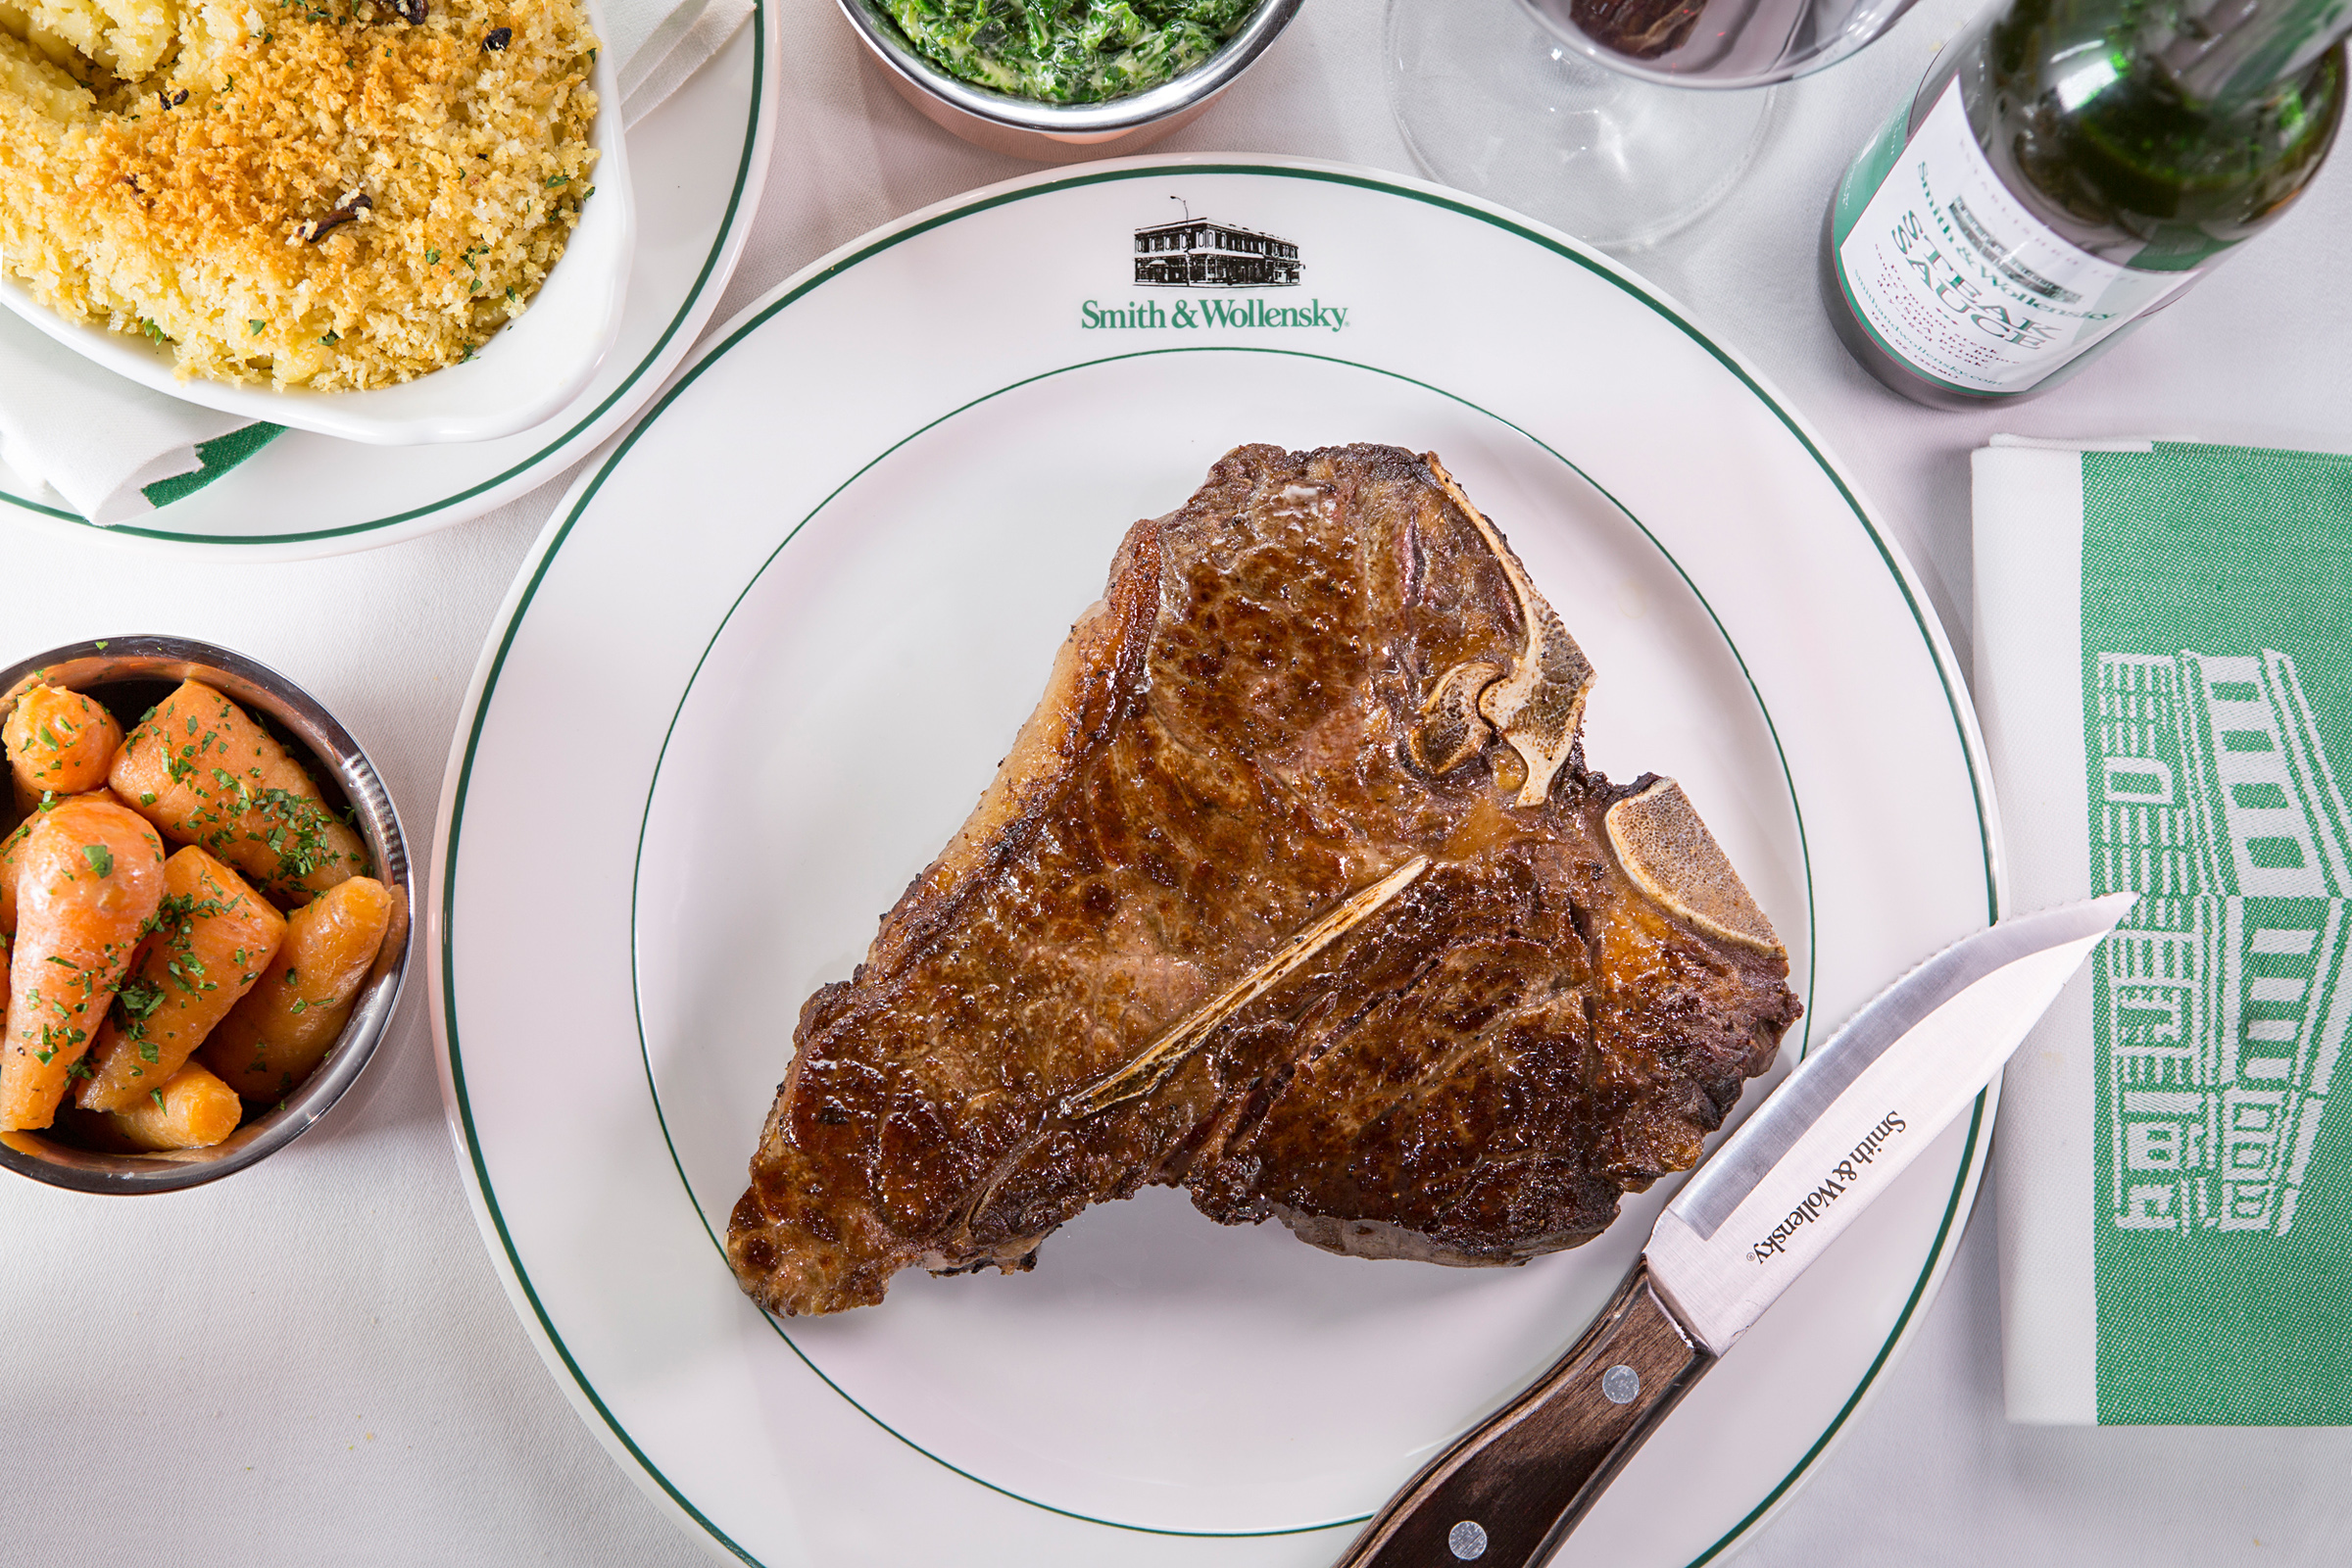 Smith & Wollensky T Bone Steak - Best Steak In London